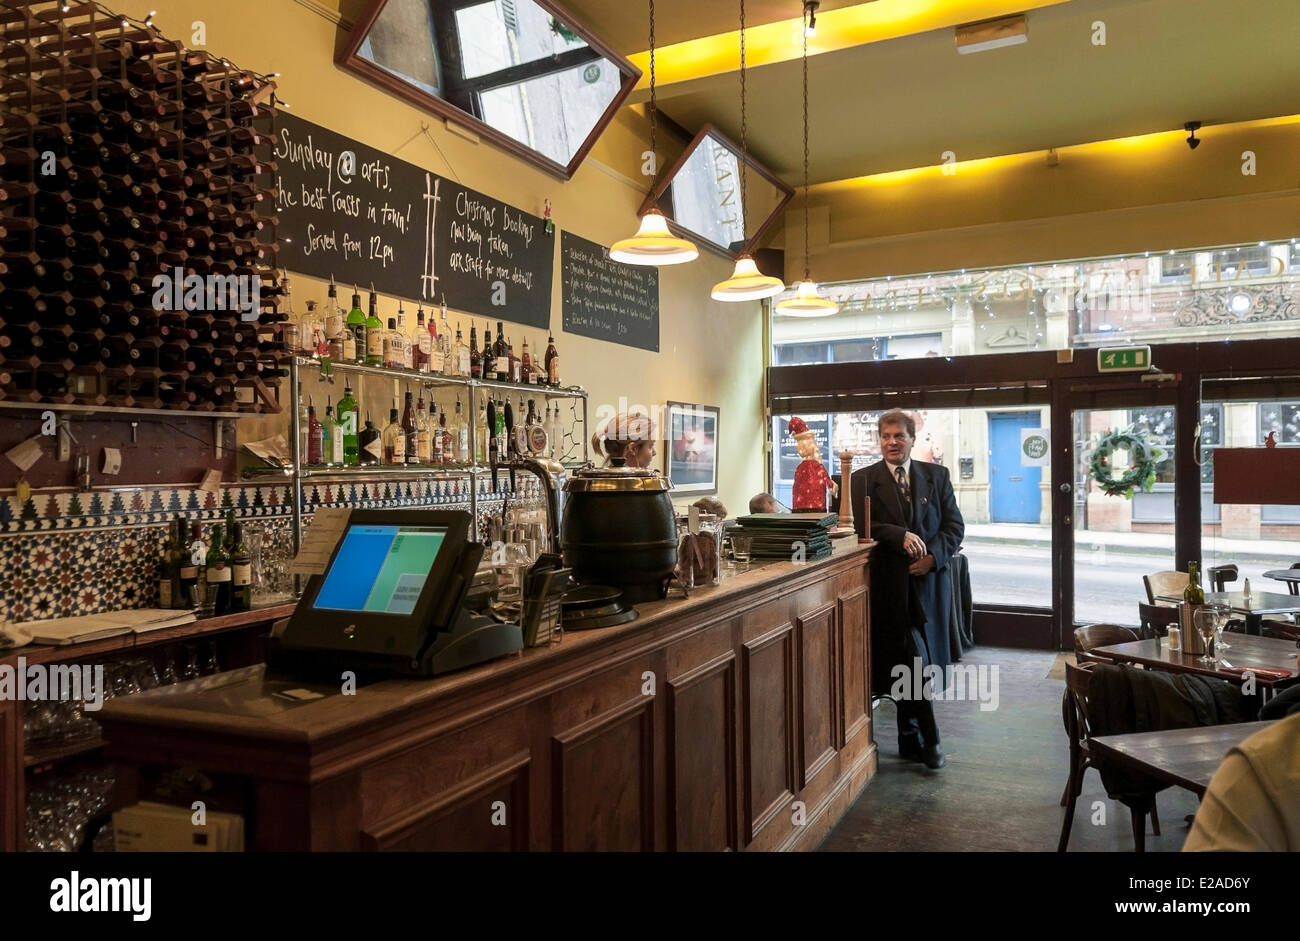 United Kingdom, Yorkshire, Leeds, downtown, restaurant and bar in the trendy quarter of Call Lane - Stock Image